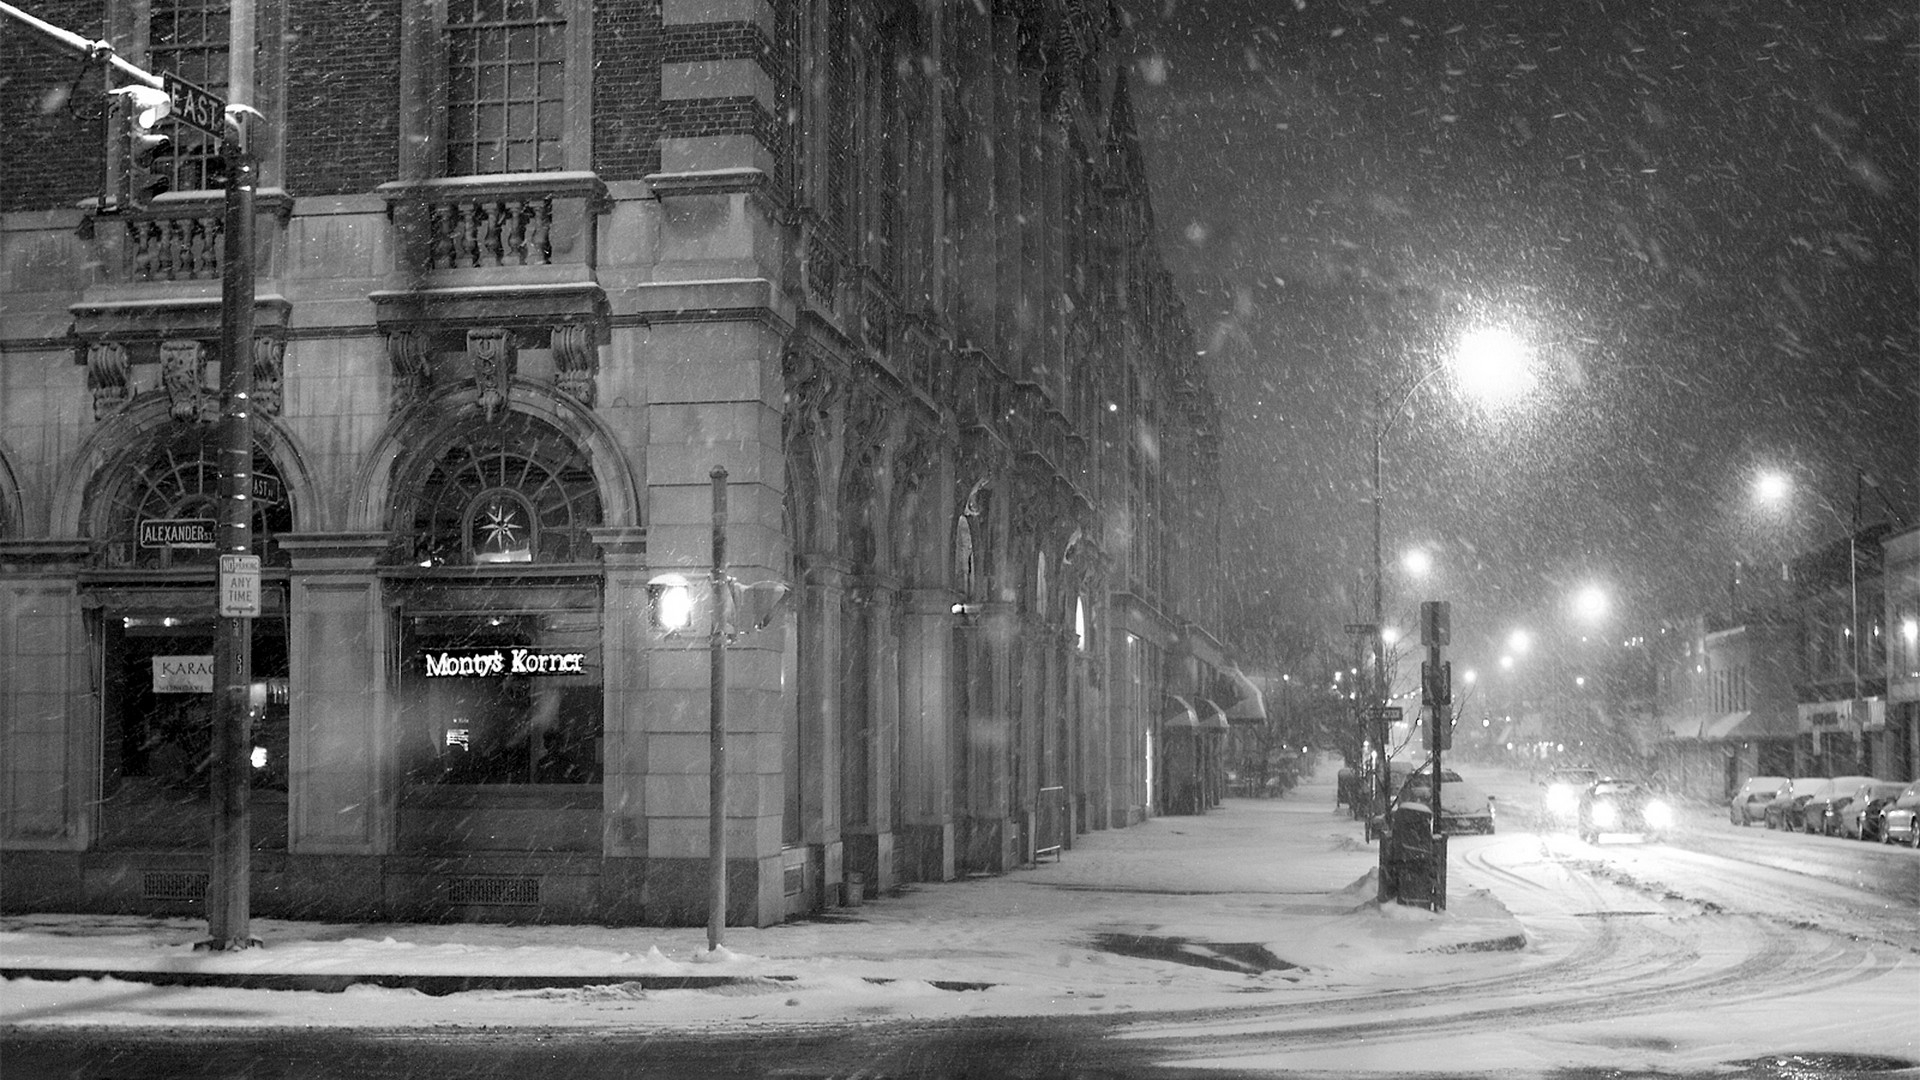 City-Street-Snow-Winter-Lane-Black-White-1920x1080-Need-iPhone-S-Plus-Background-wallpaper-wp3403929